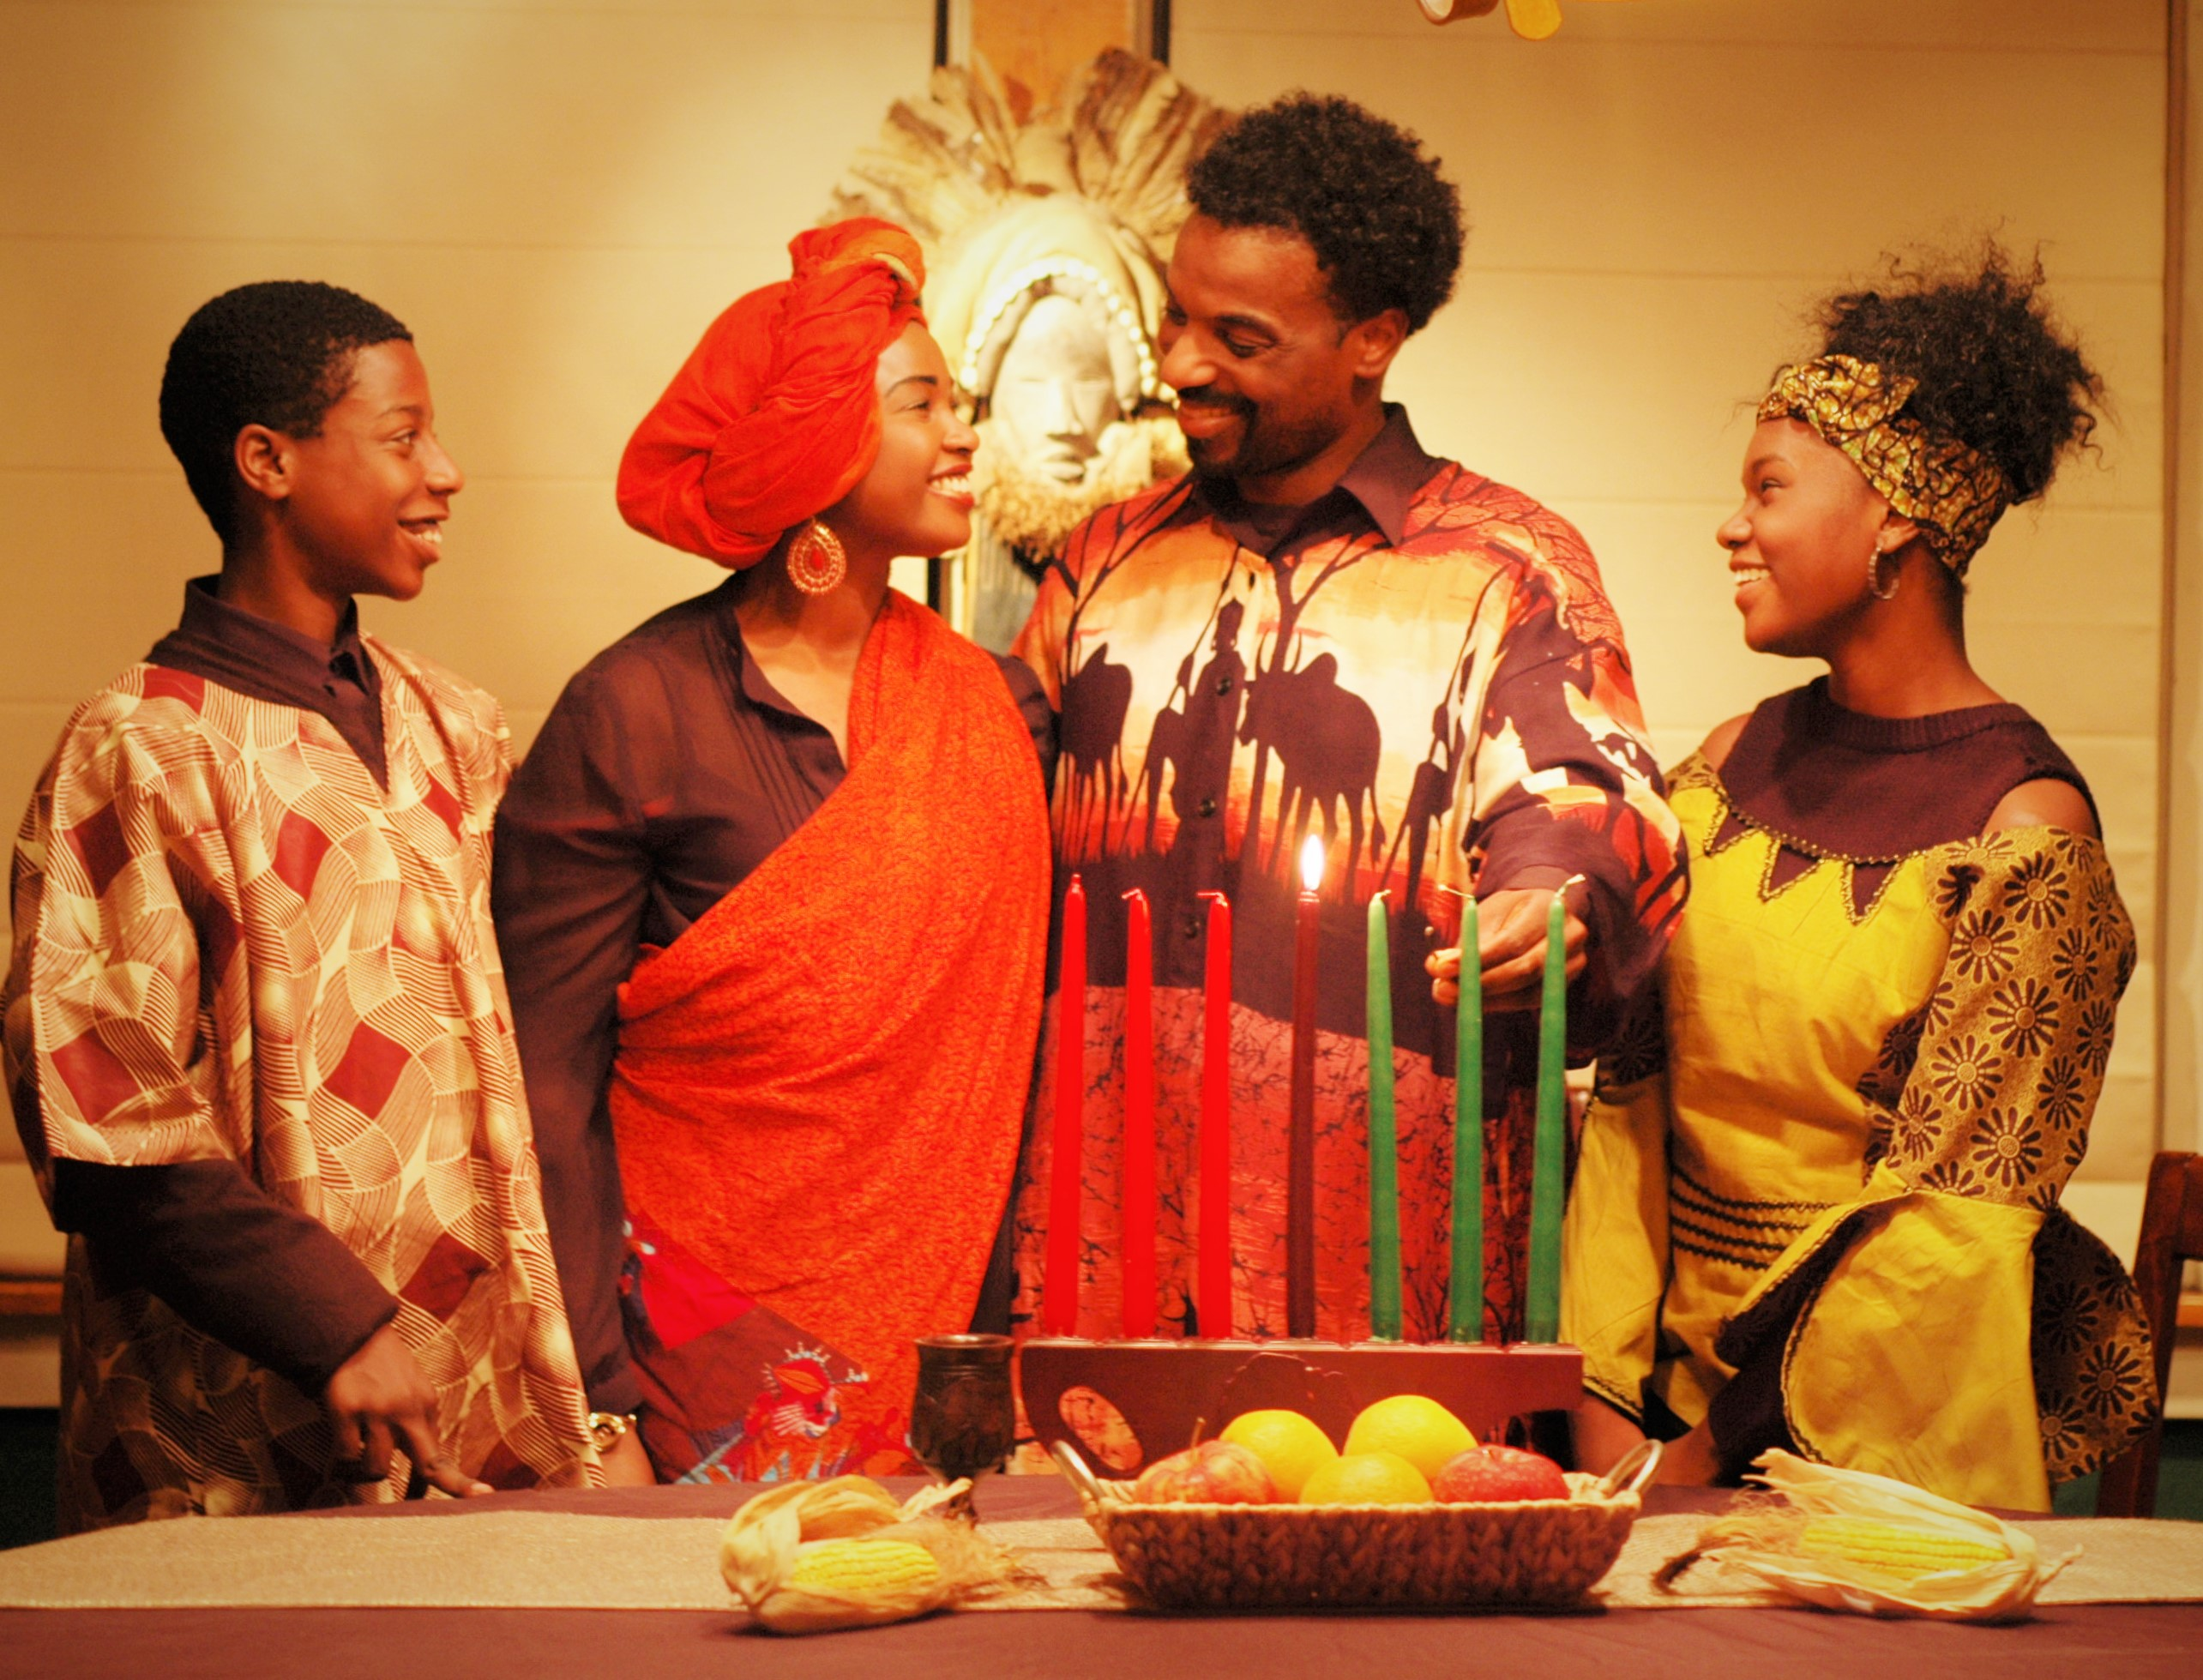 It's an 'Ubuntu Holiday' for the people in Cheryl El-Walker's play. Actors shown here are (L to R) Sundiata Rice, Melessie Clark, LaMar Darnell Fields, and Nia Washington. (photo: Mark Clayton Southers)